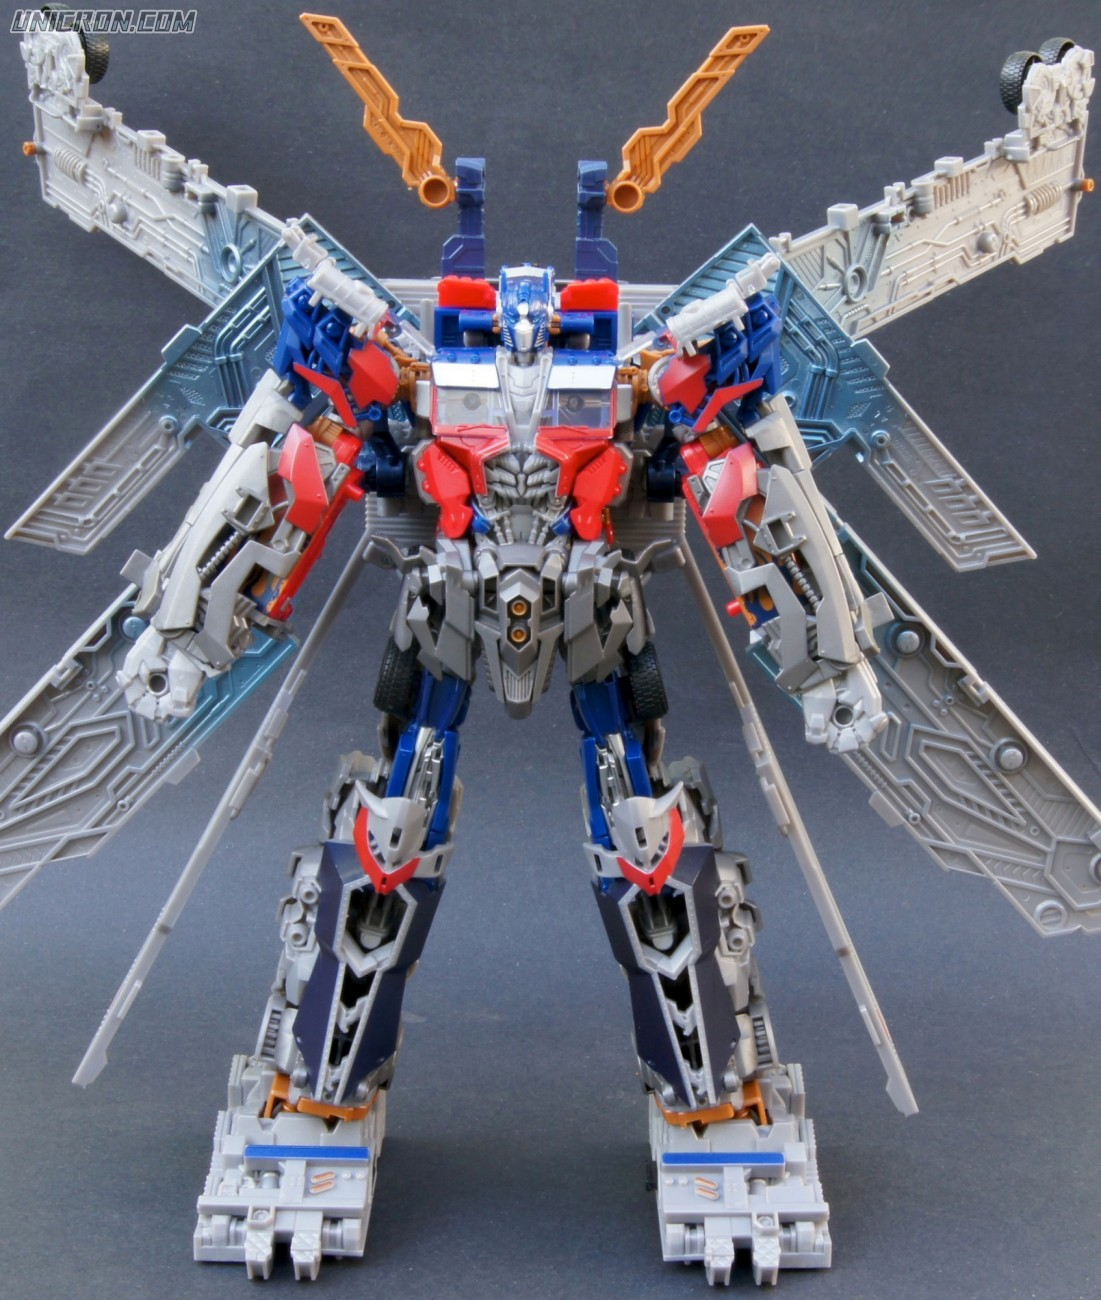 Transformers 3 Dark of the Moon Ultimate Optimus Prime toy